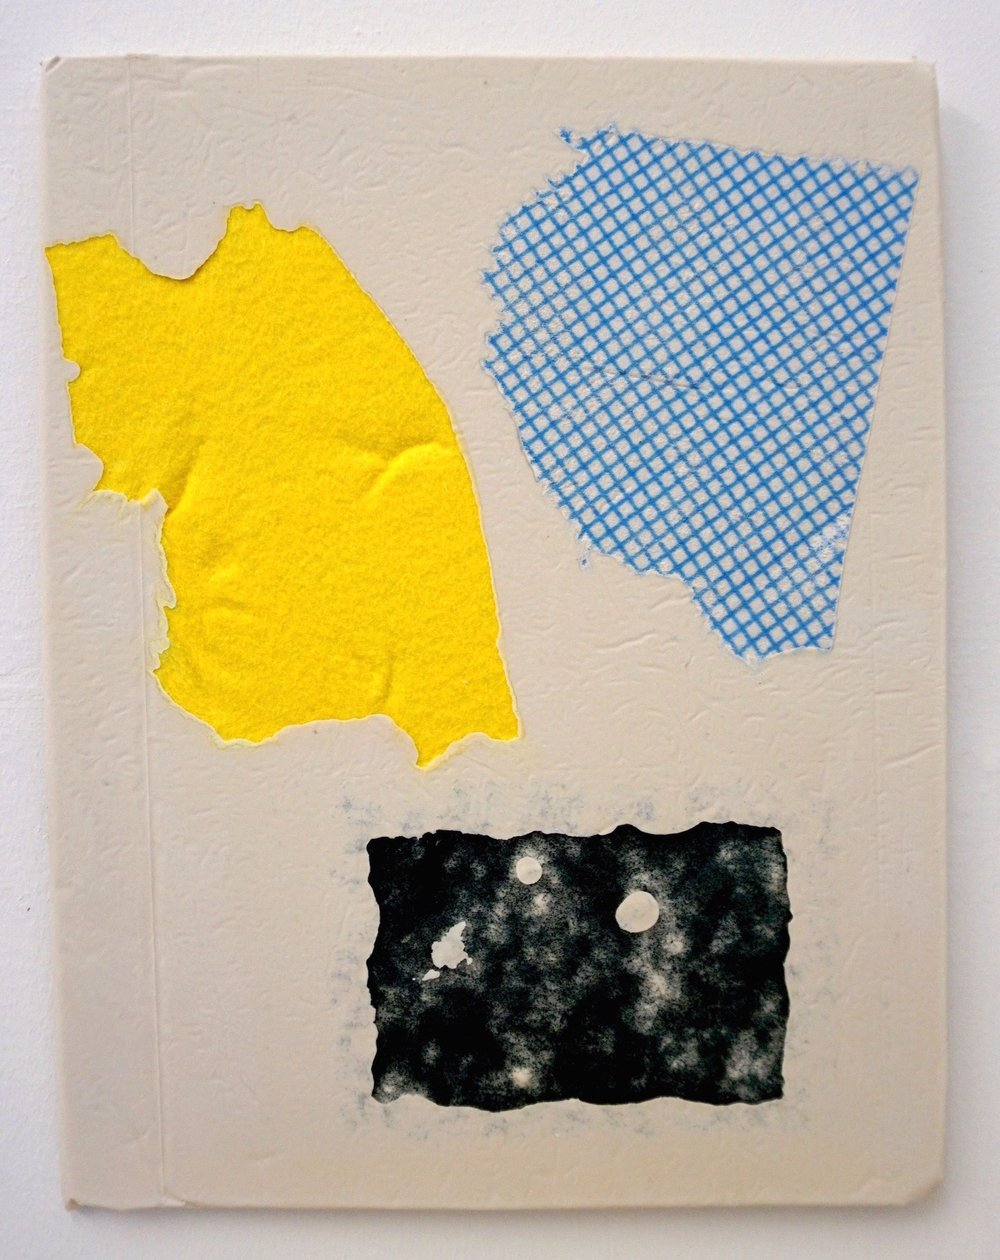 Domestic Bliss Fragment (yellow, blue, Green)   Composite, Mixed Media   35 x 28 cm